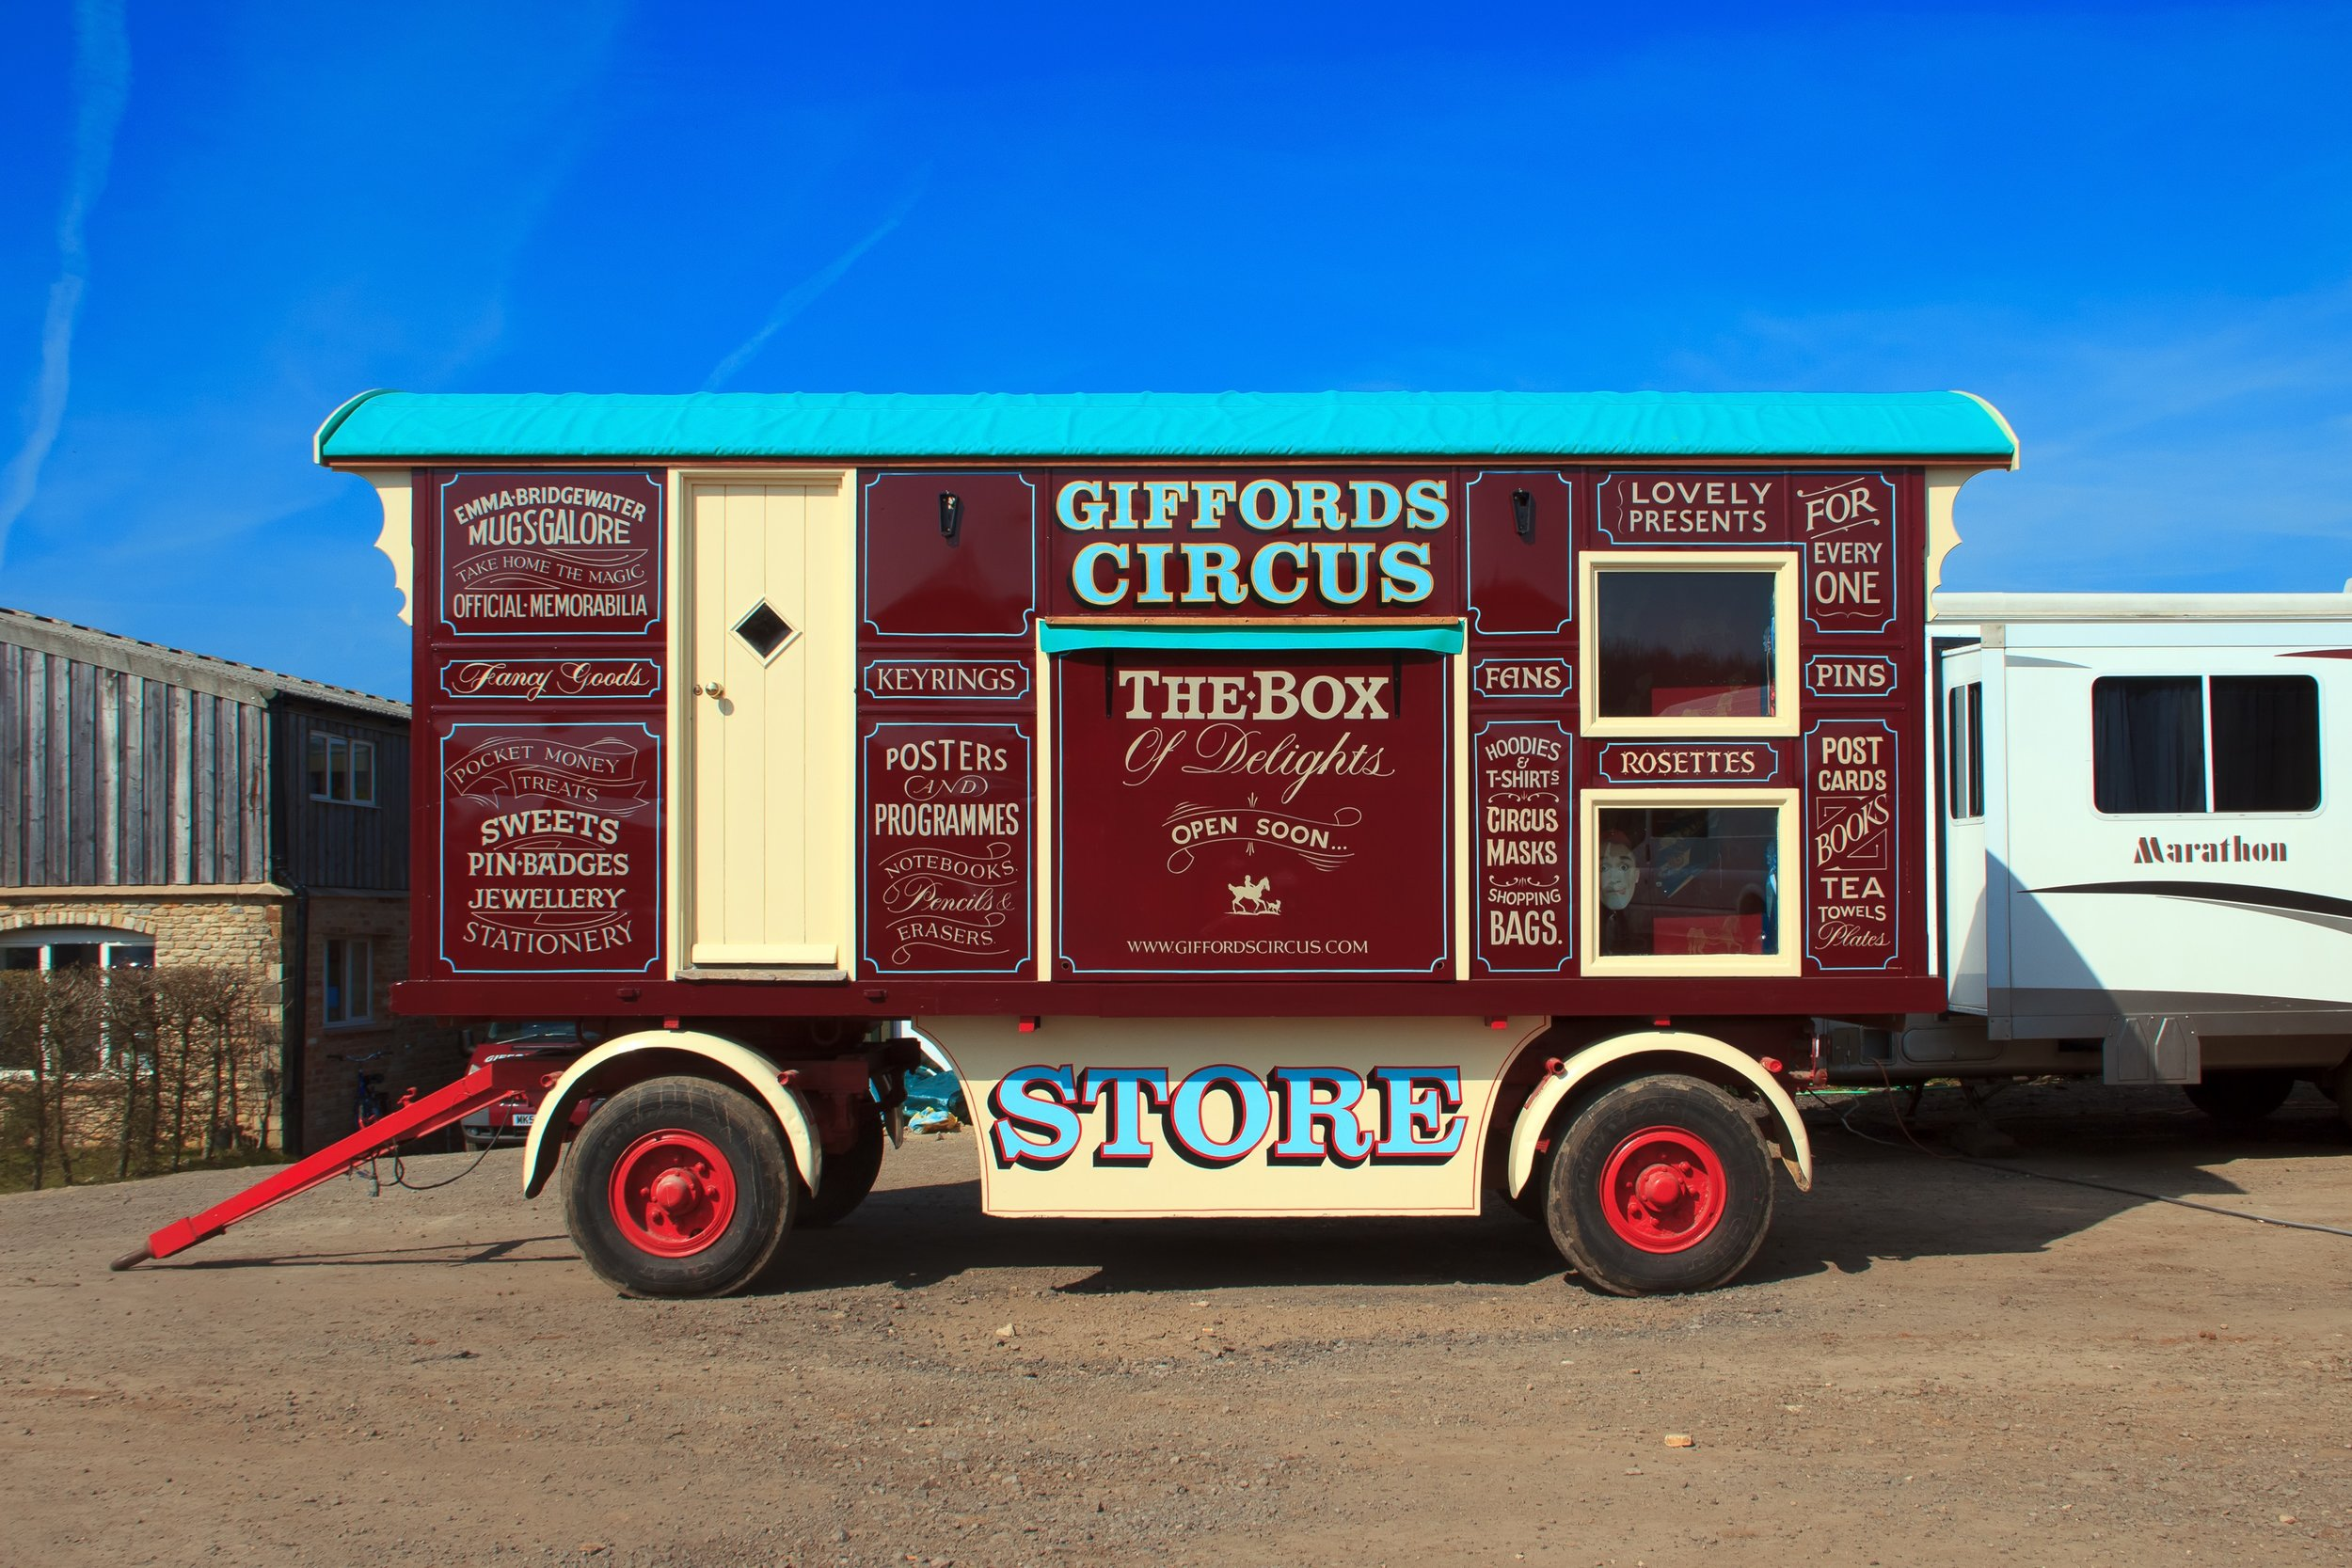 Giffords caravan - hand built and hand painted. Photo:  Jack Ball